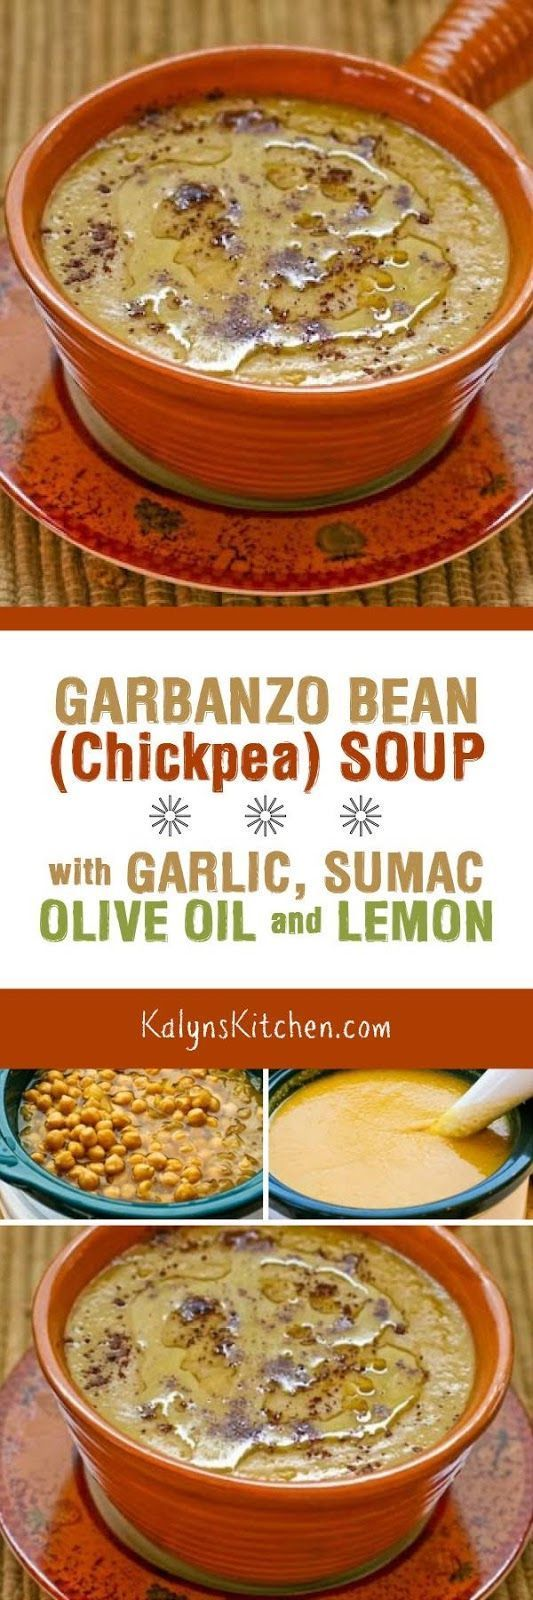 17 Best images about Soup, Chili and Stews - A Souper Collection of ...